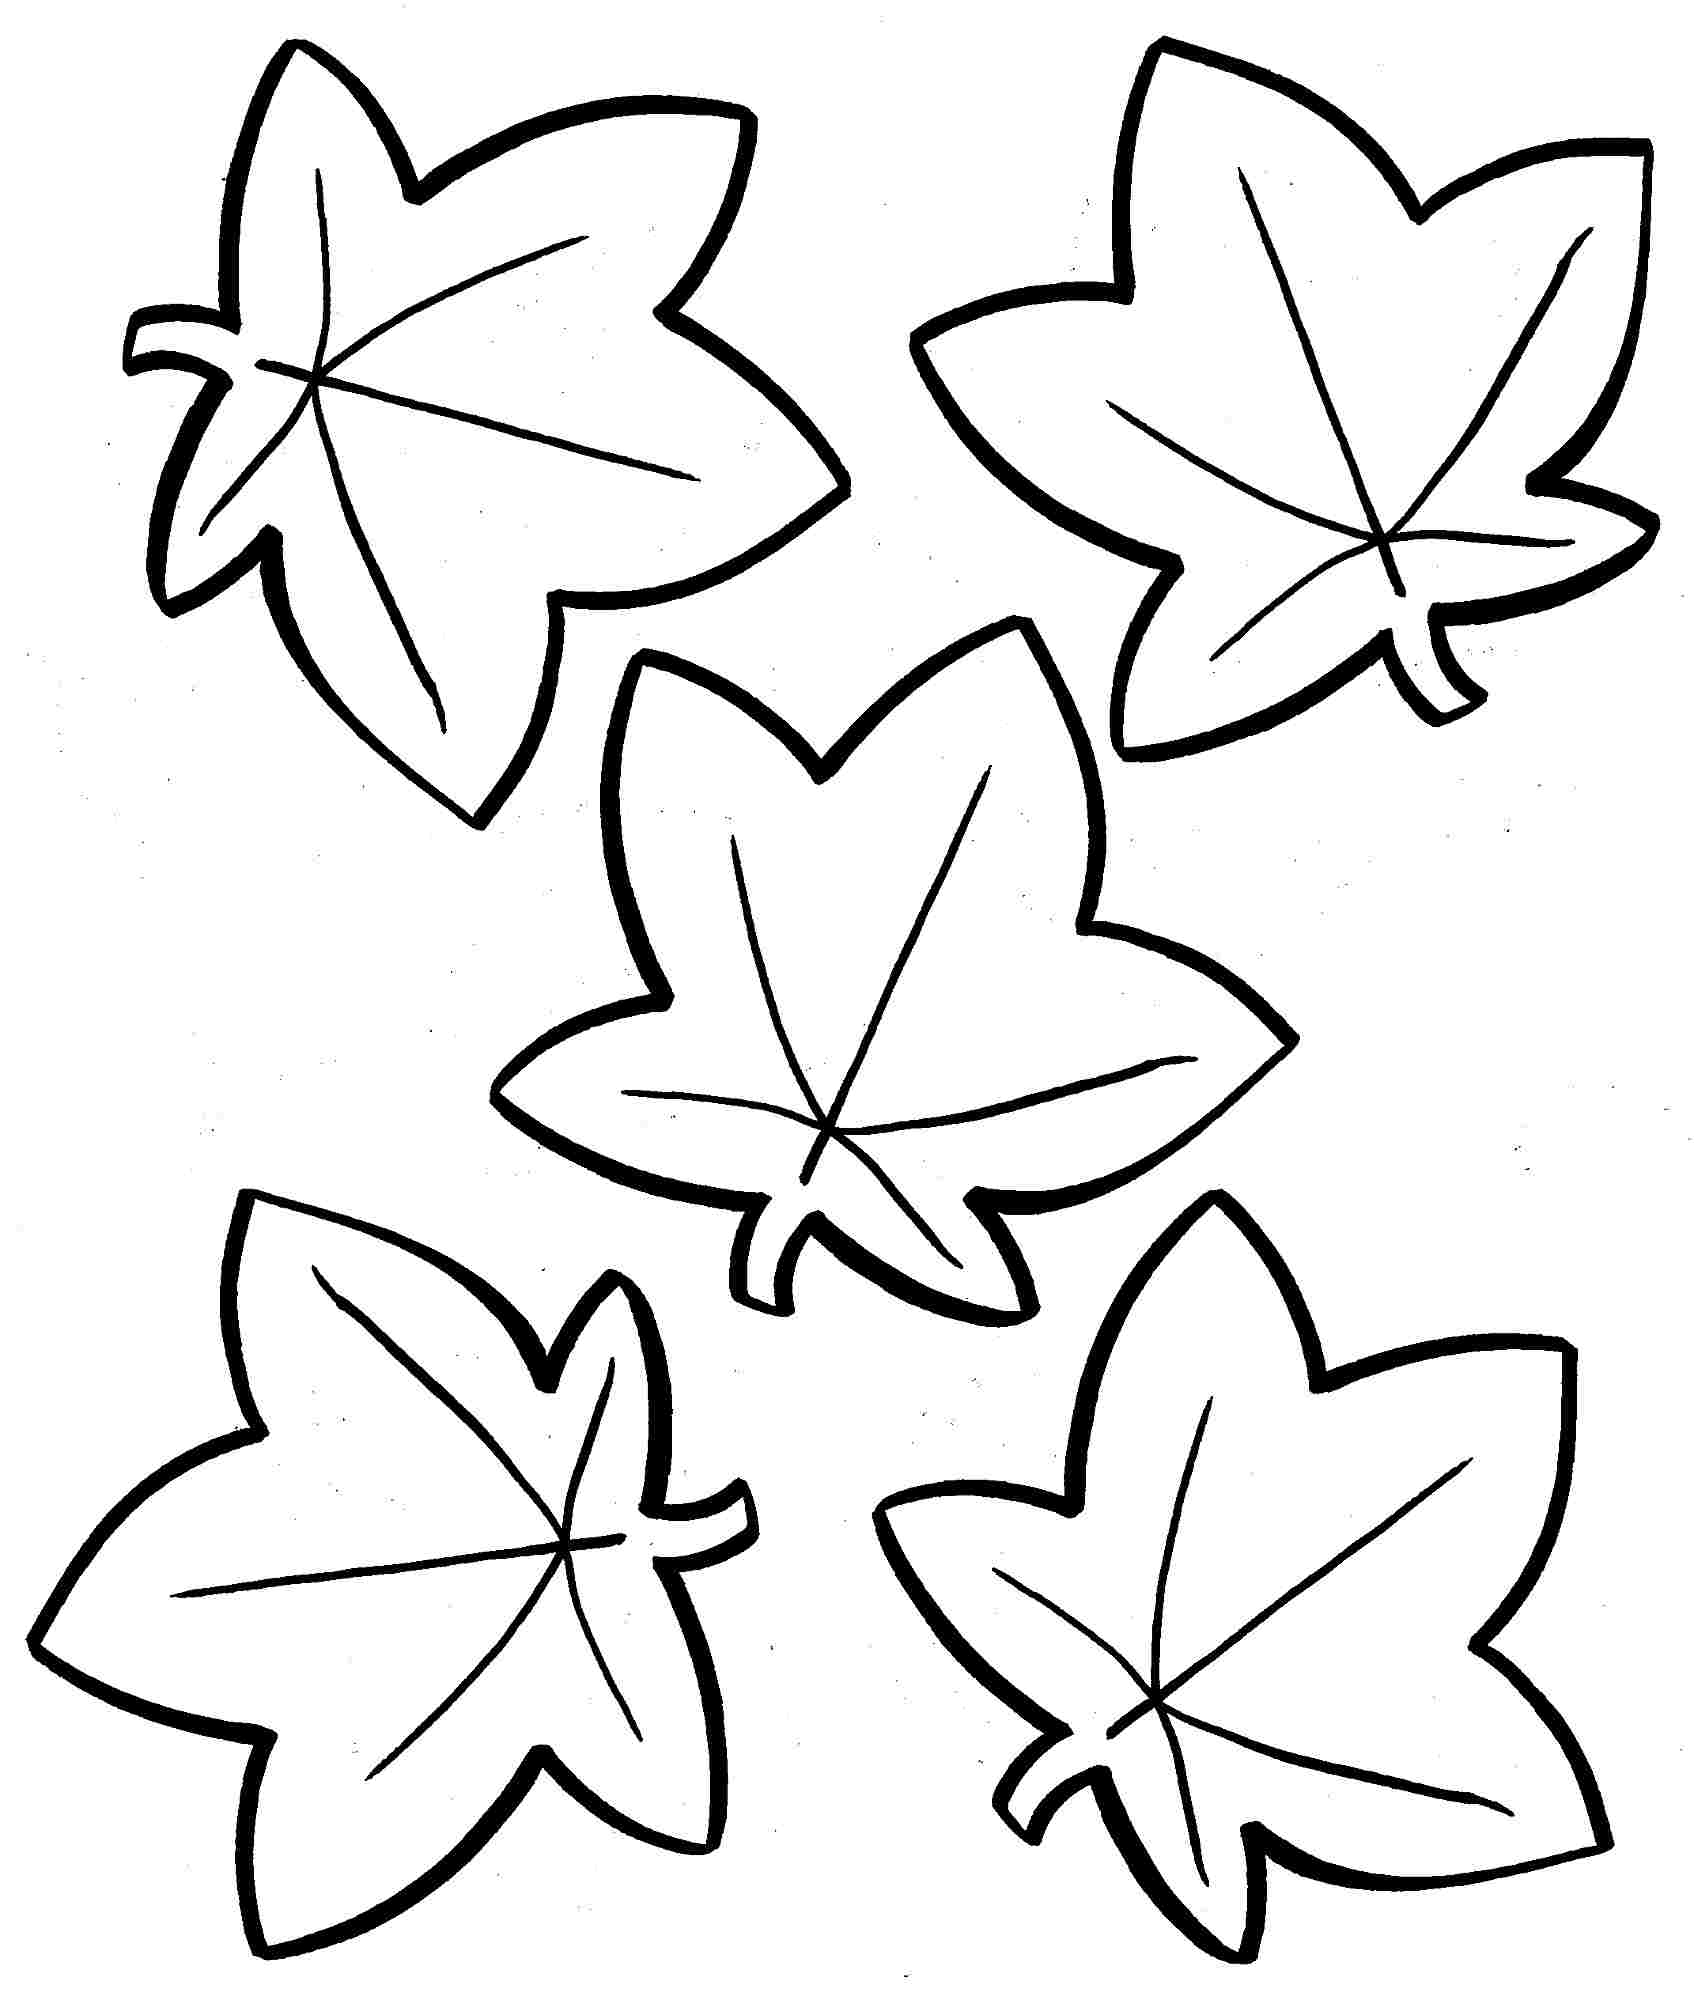 Fall Coloring Pages For Kindergarten At Getdrawings Com Free For